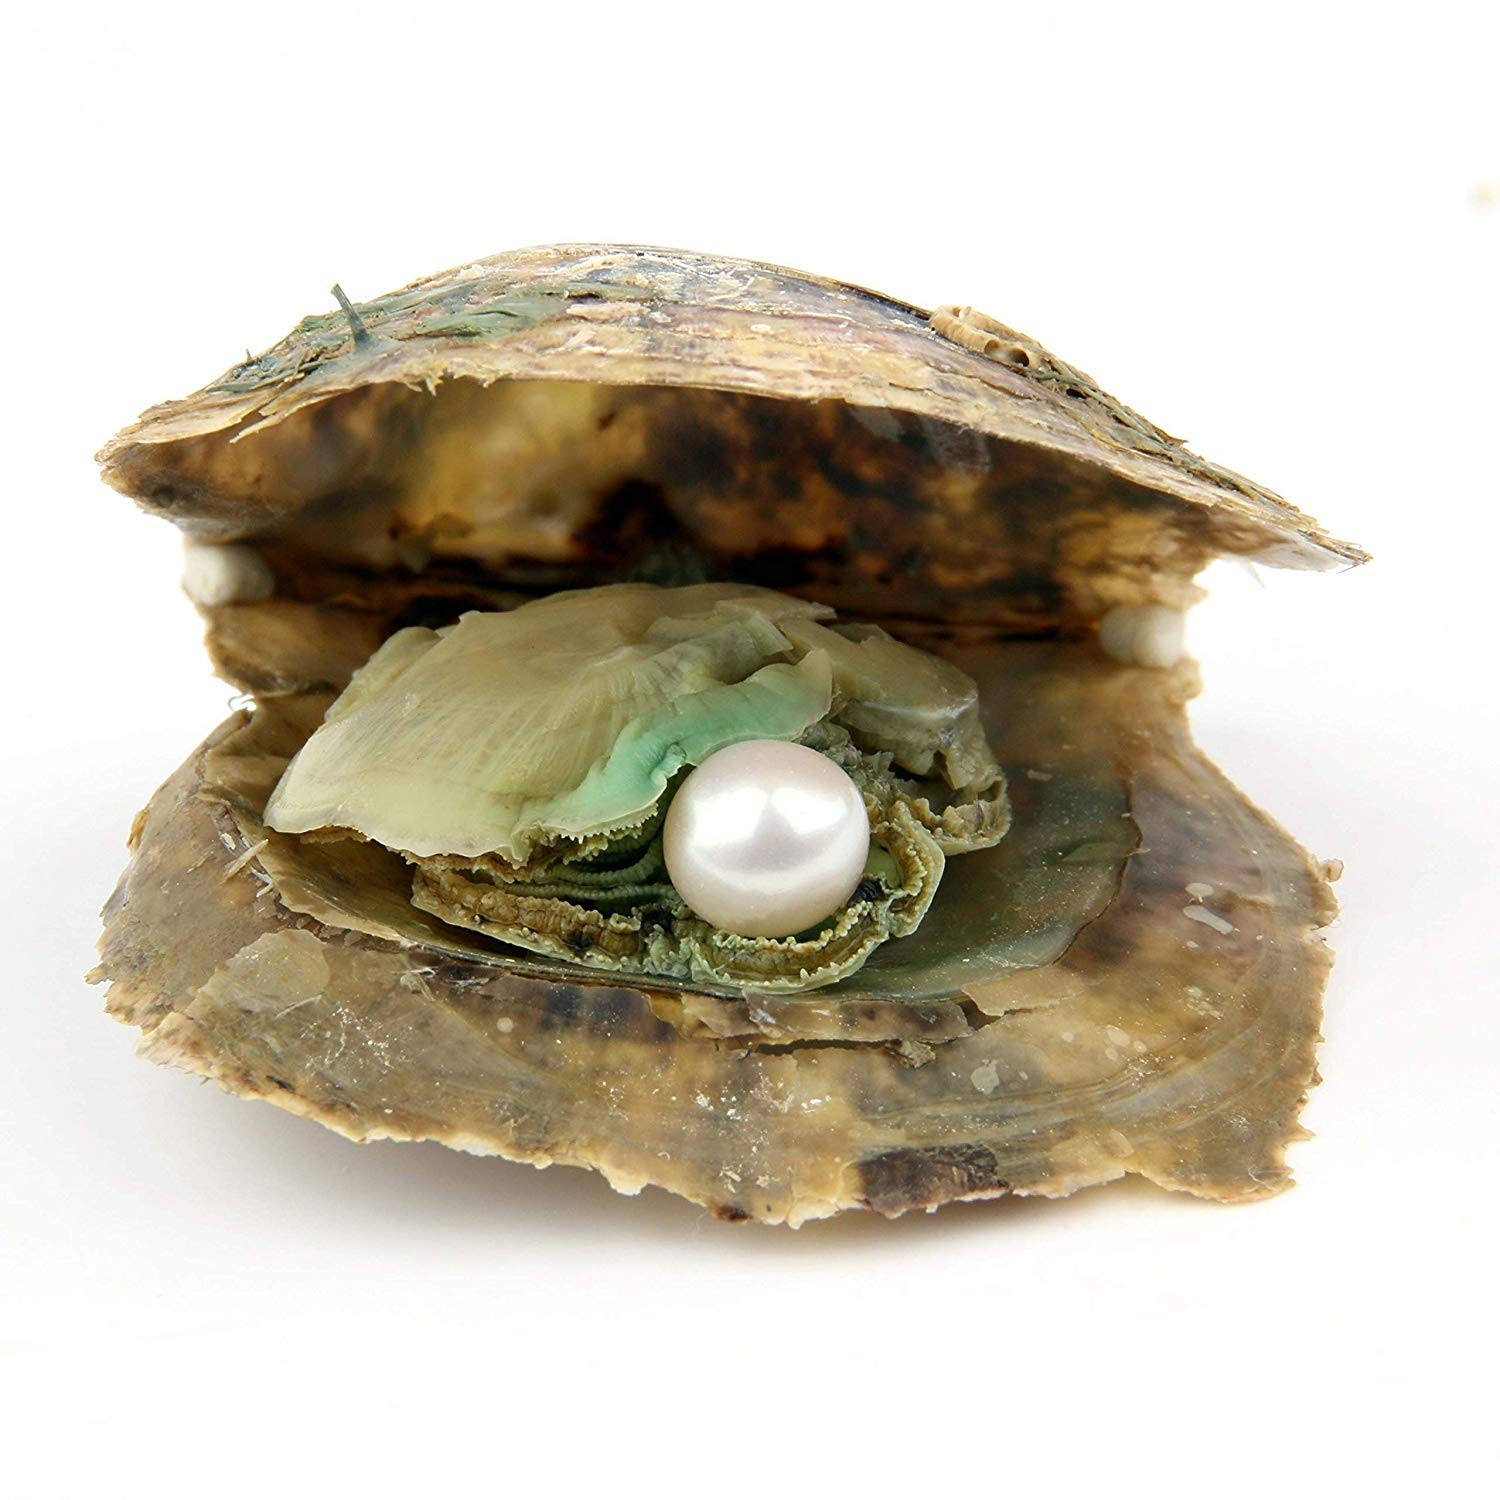 POSHOPS 50PC Akoya Oysters with Pearls Inside Wholesale Round Pearl Saltwater Akoya Oysters Bulk for Christmas Party by POSHOPS (Image #5)